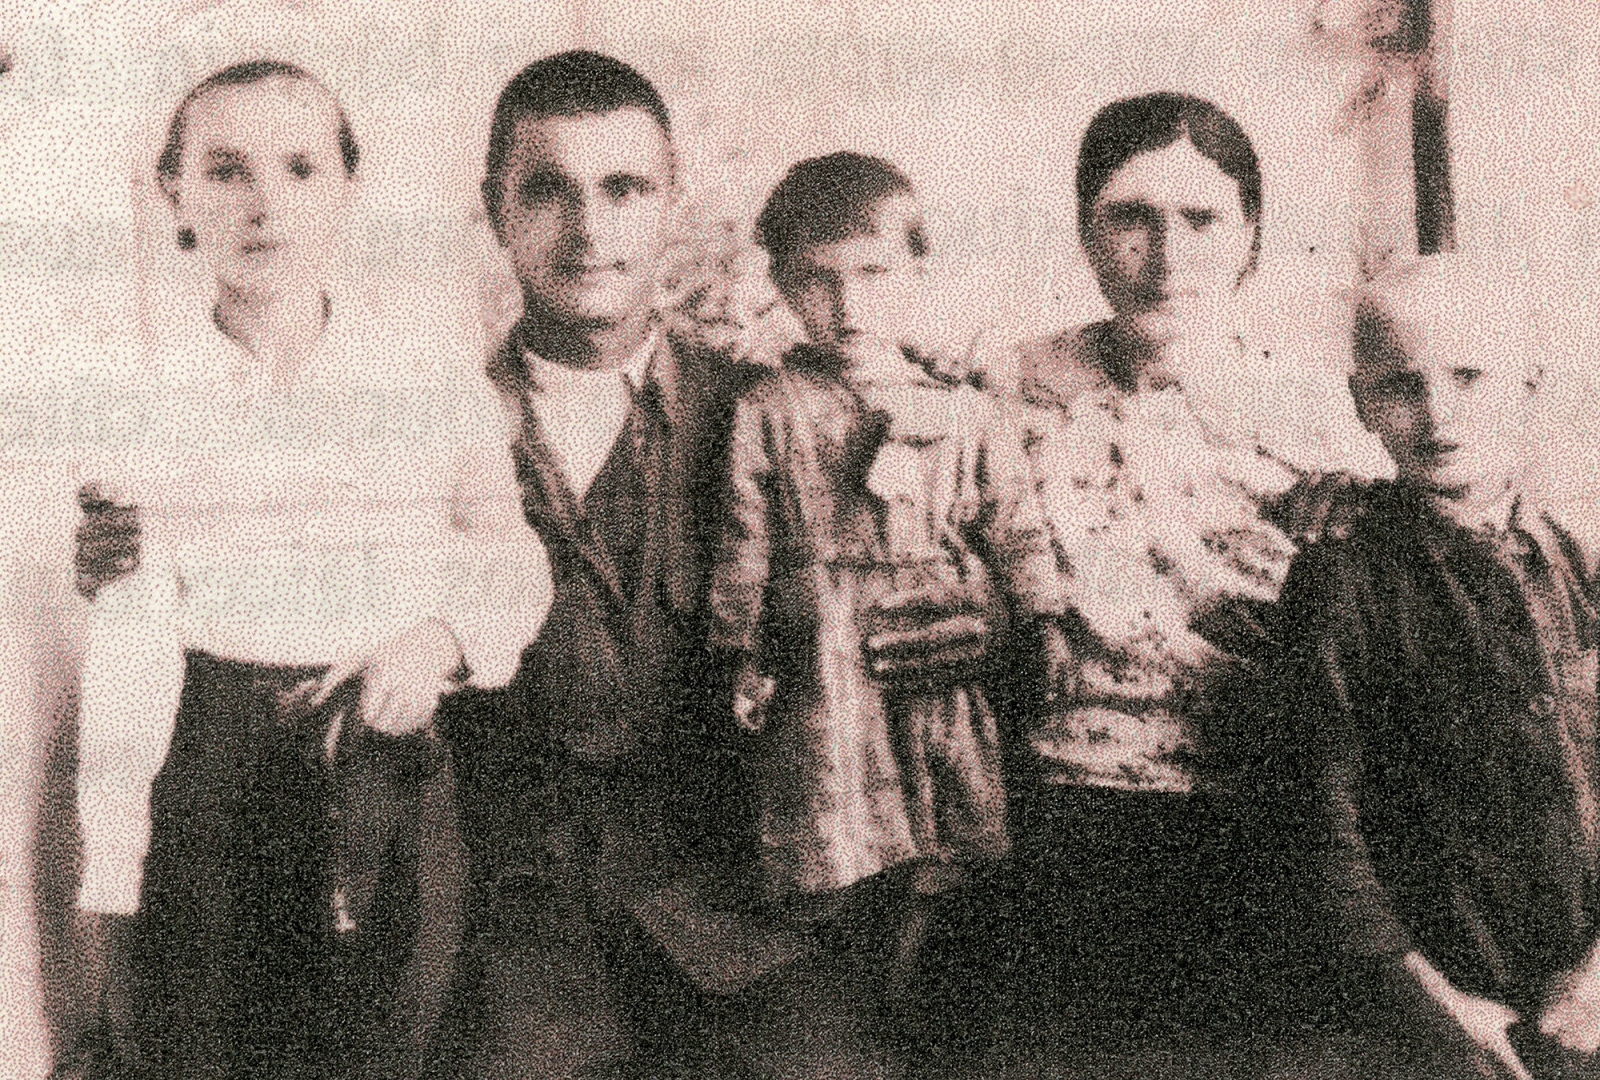 "We try to recover a lost image of Ana and Pasha with their family and their father, Nichifor, who fled the Soviets, due to his brother being a local mayor in Moldova and their staunch opposition to the Bolsheviks. The details of what happened to their father after they were deported are hazy for Ana and Pasha. They only know that he was captured in Romania and sent to a gulag near Odessa. He died in prison of unknown causes. This photo was taken before the family was deported and the original image has been lost. It is impressive to think about the availability of images for this story and how much easier it is to preserve events and memory today, ""The children nowadays are smarter, they remember everything. They are born with mobiles in their hands. We weren't so lucky."" -Pasha Ana remembers the night their father fled, ""One night, around midnight, our father, before fleeing to Romania, knocked on the window and gave us a box of sweets, saying to us, 'Your father is going away alone, I don't know where, but you must listen to your mother because she is staying behind to raise you.'"" They never saw him again."